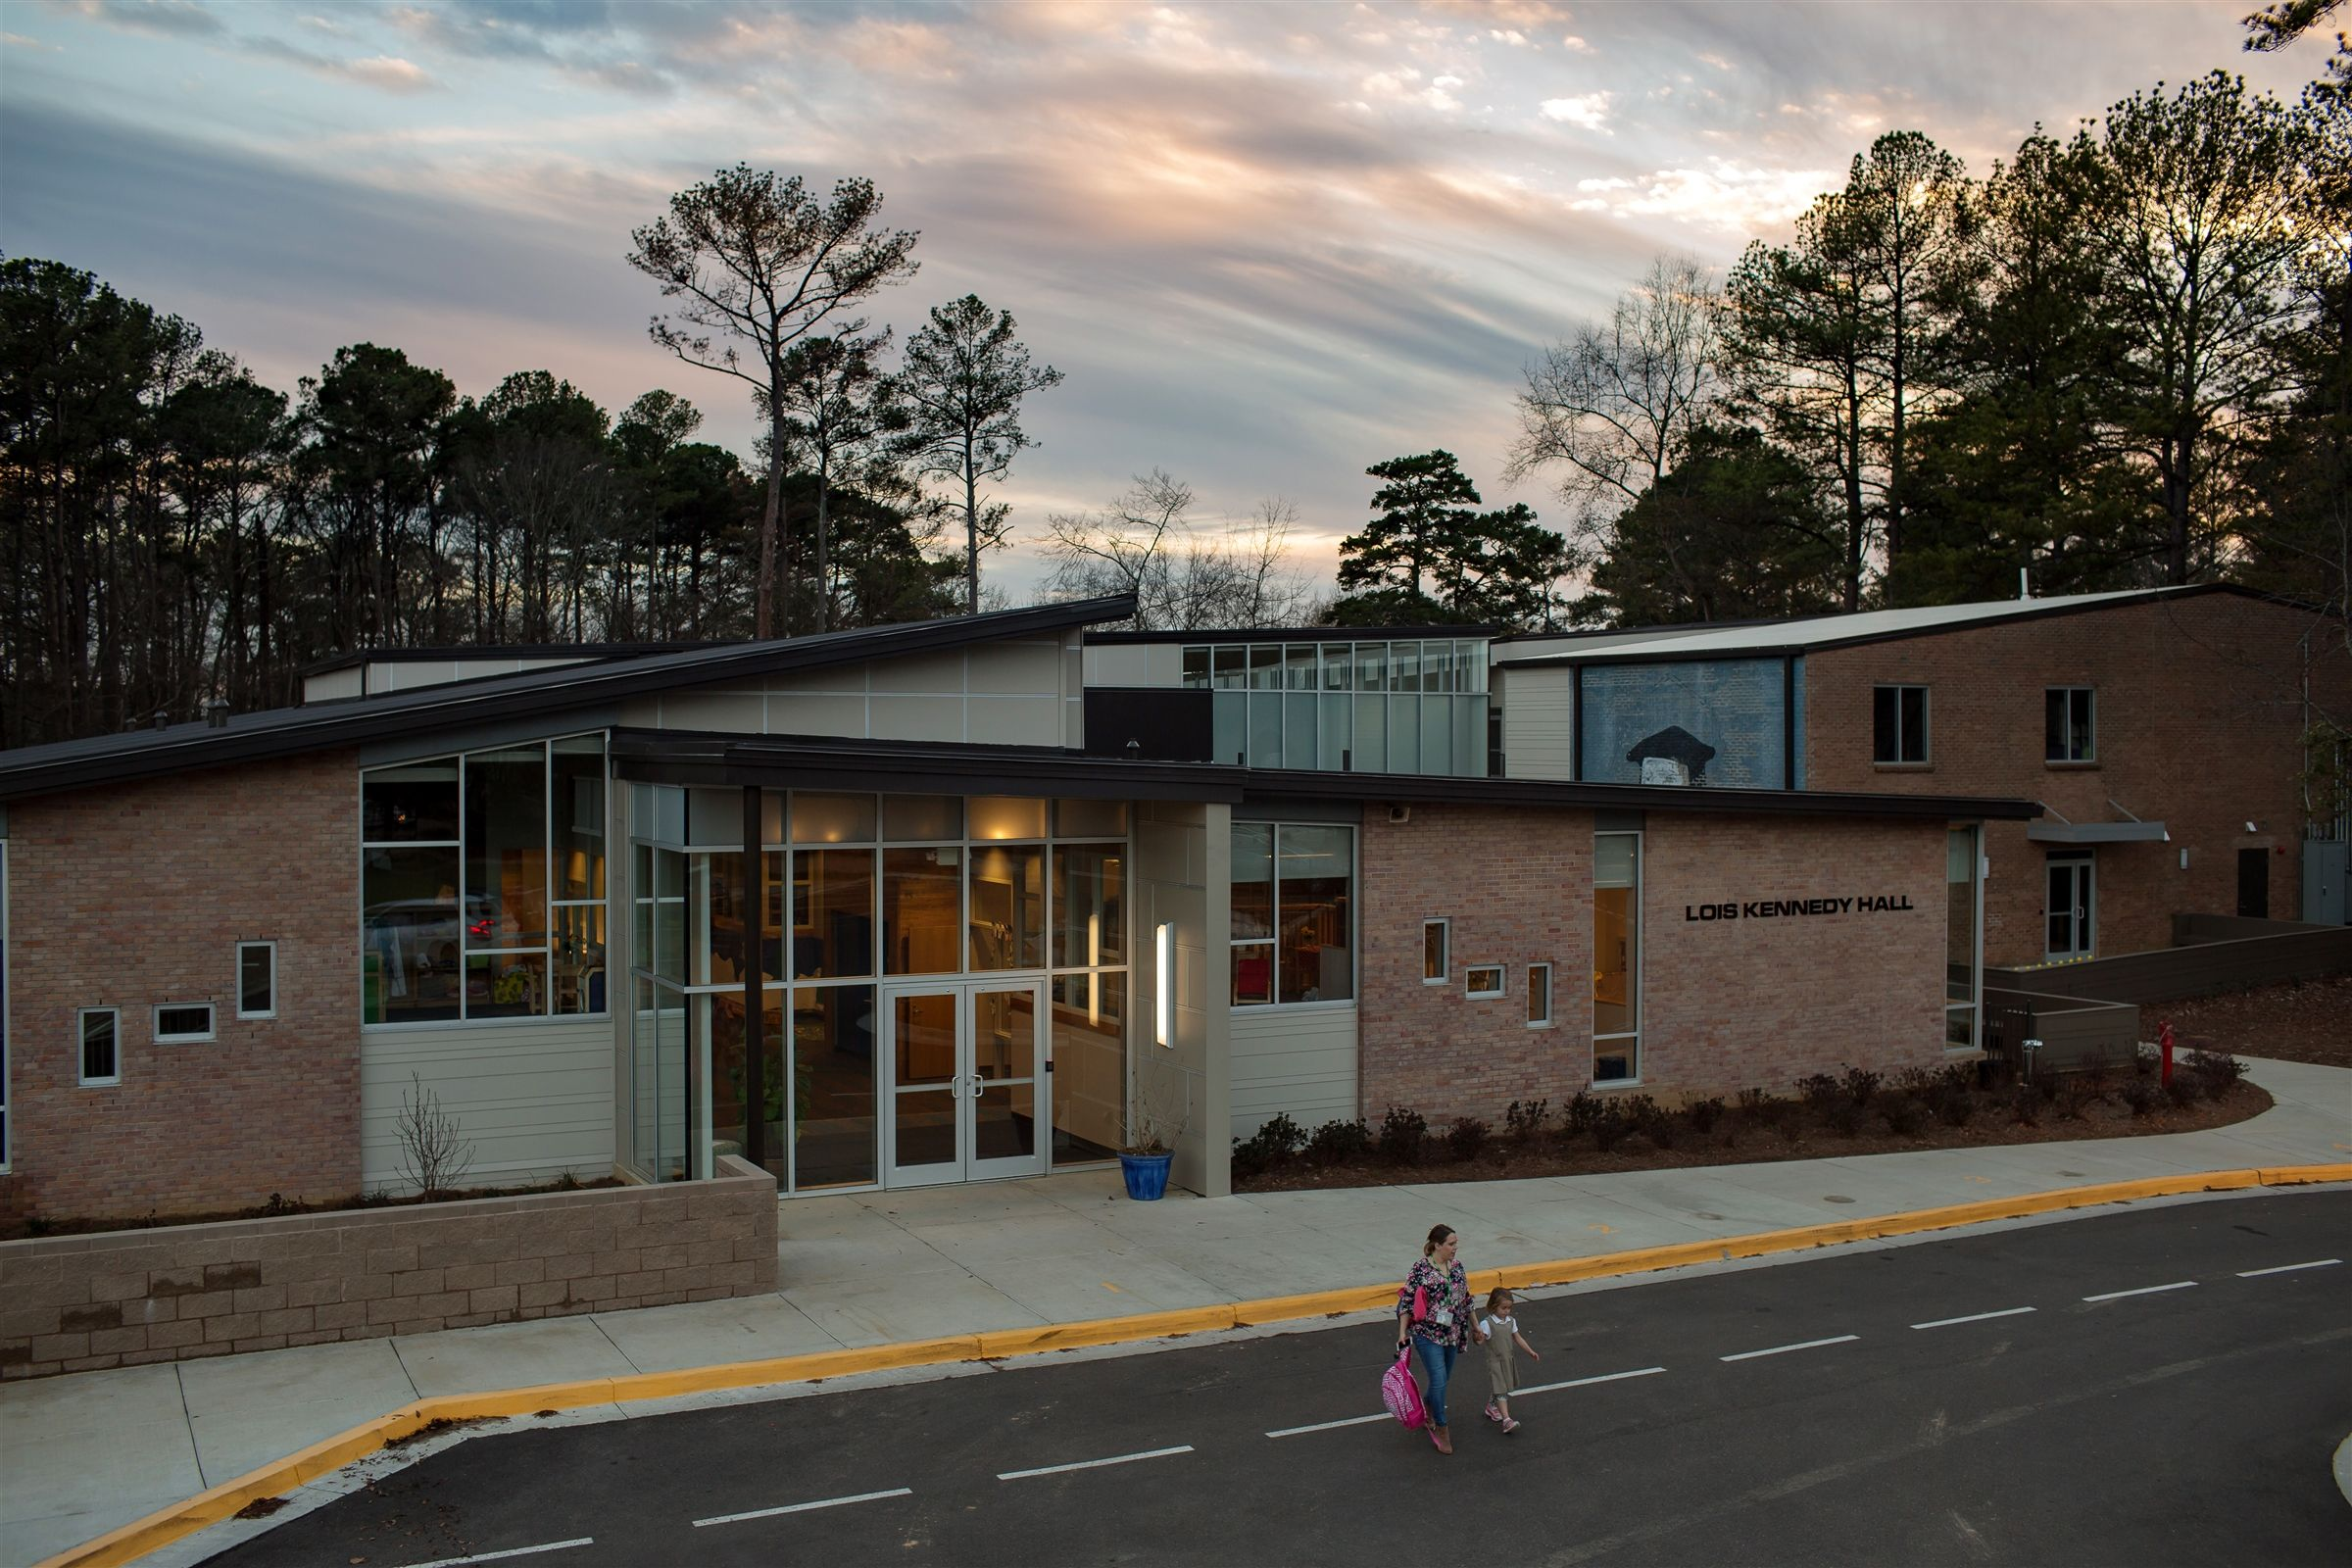 The Early Childhood Center was designed specifically for our youngest learners.